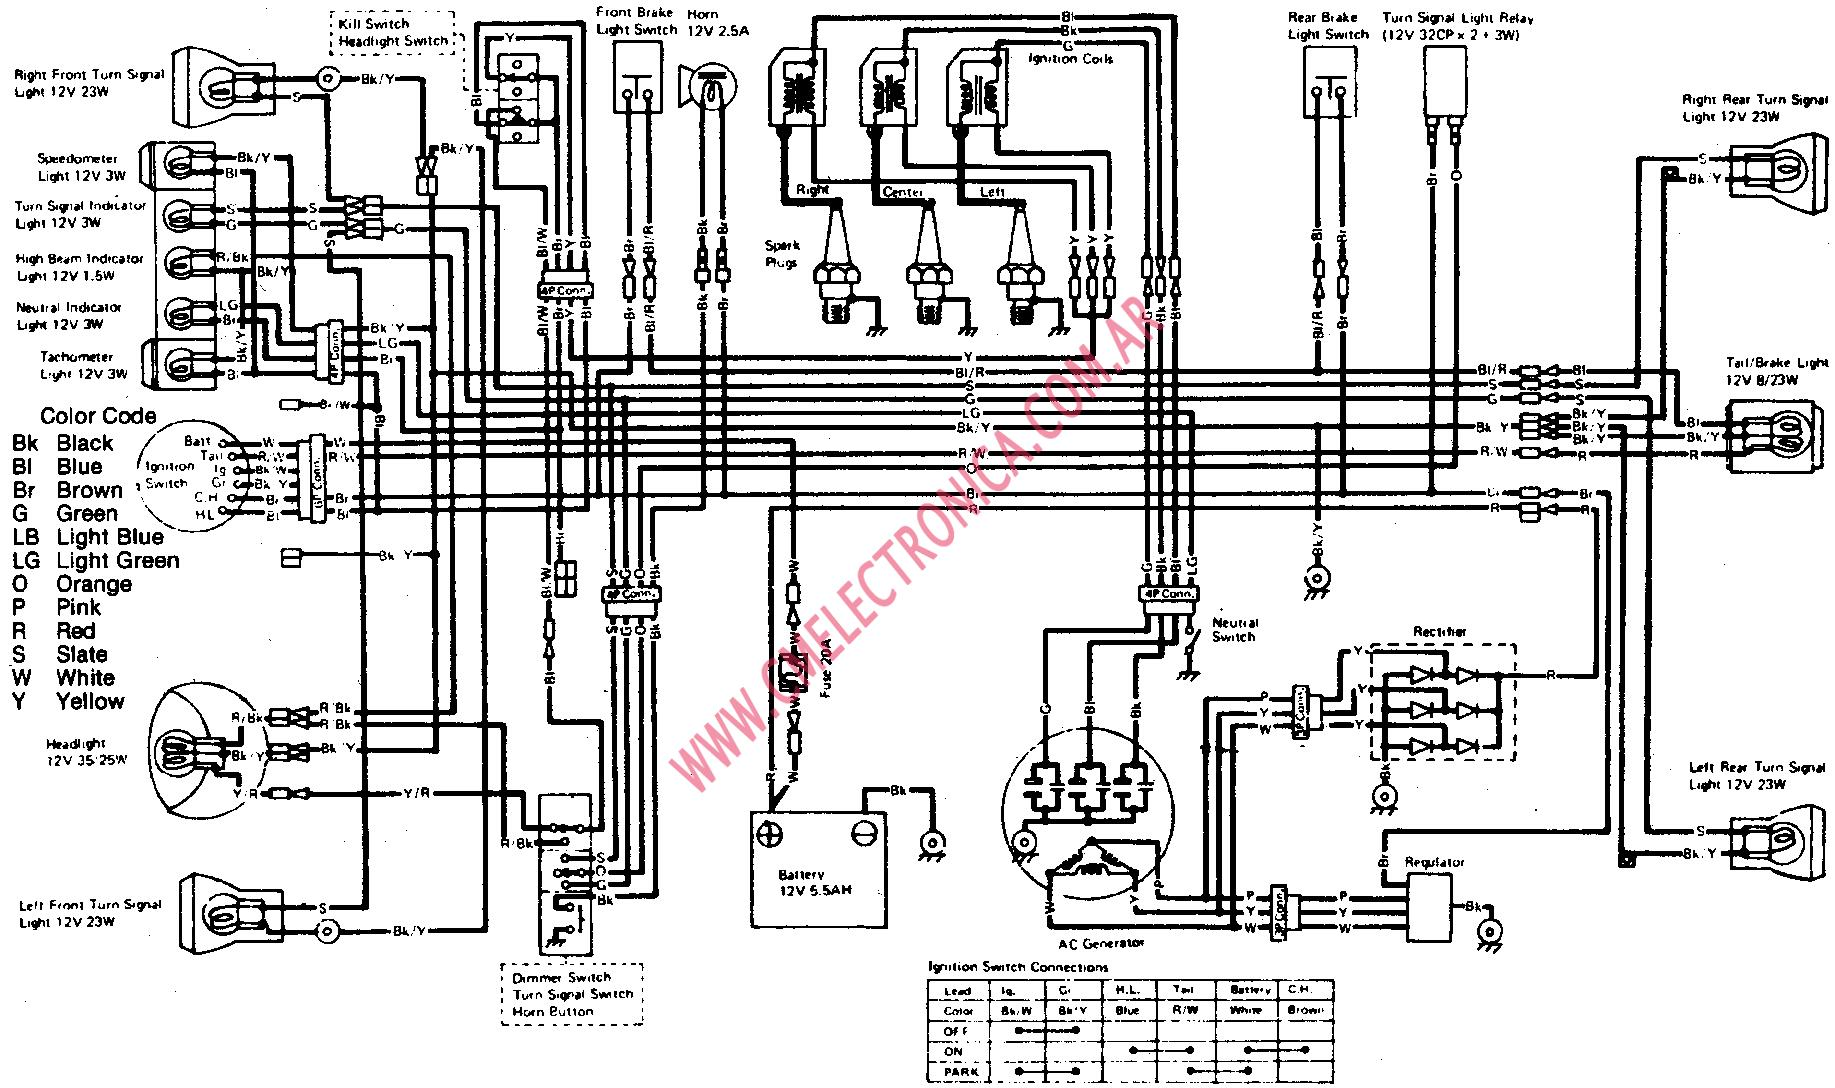 Kawasaki 4 Wheeler Wiring Diagram | Wiring Diagram on kawasaki 300 accessories, kawasaki 650 prairie wiring diagram, kawasaki 300 exhaust, kawasaki 300 fuel pump, kawasaki 185 wiring-diagram, kawasaki bayou wiring diagram, 94 kawasaki motorcycle wiring diagram, kawasaki 1996 wiring harness diagrams, kawasaki 220 wiring diagram, kawasaki cdi wiring diagram, kawasaki bayou 220 wiring, kawasaki 360 wiring diagram, kawasaki 300 headlights, kawasaki brute force wiring diagrams, kawasaki 300 forum, kawasaki bayou battery wiring, kawasaki mule wiring-diagram, kawasaki x2 wiring diagram, kawasaki 400 wiring diagram, kawasaki 300 power,